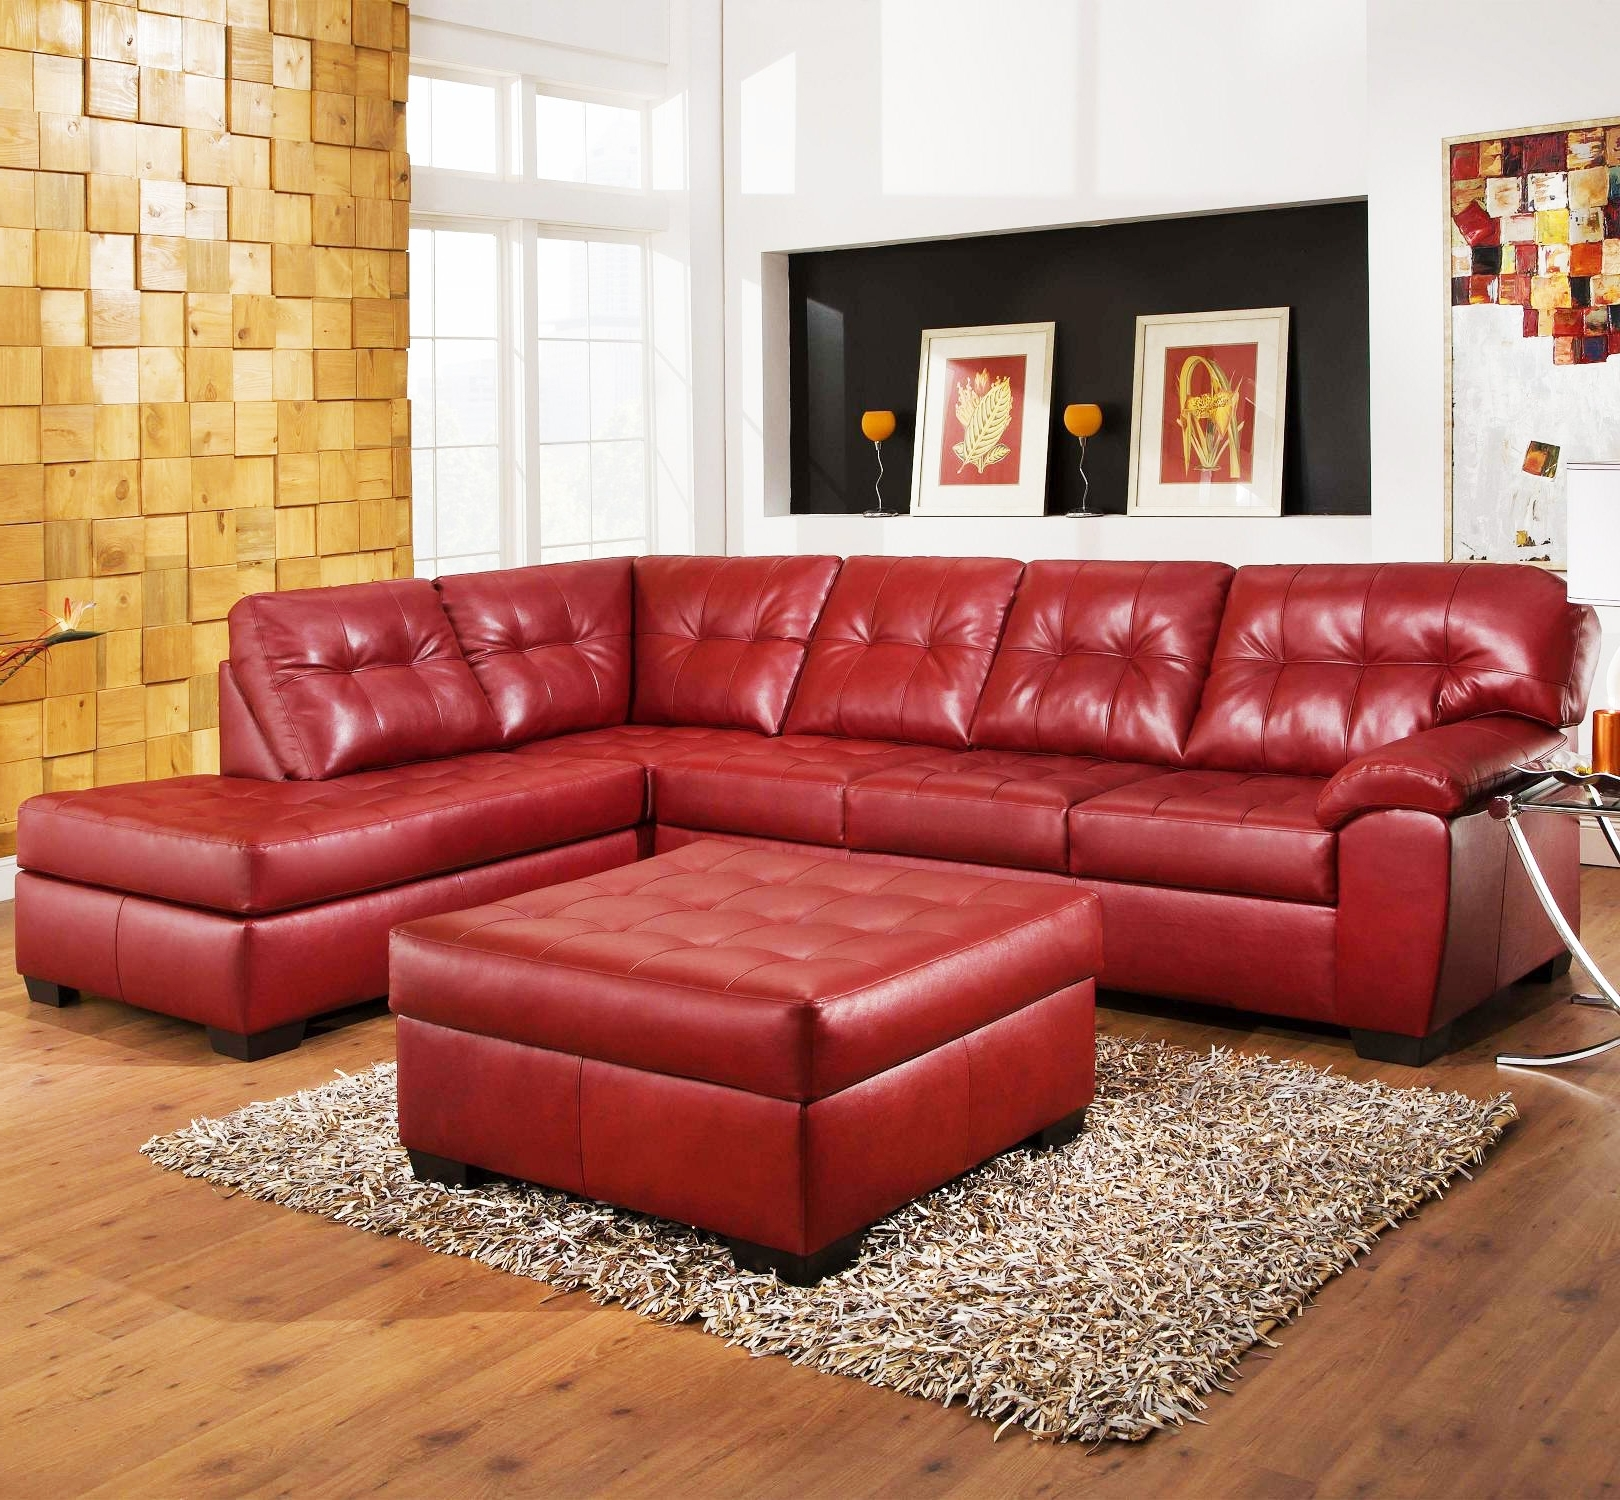 Living Room: Astonishing Rooms To Go Sectional Leather Havertys In Most Recently Released Rooms To Go Sectional Sofas (View 8 of 20)